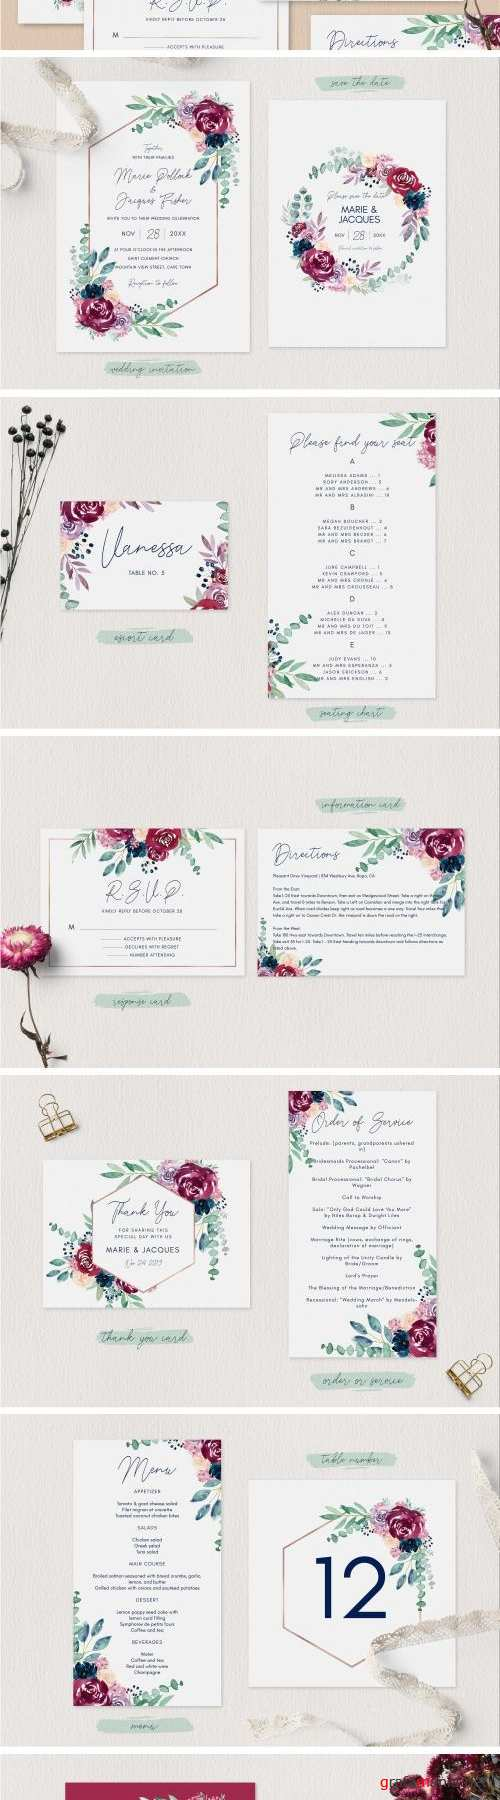 Burgundy Wedding Invitation Set - 2573257